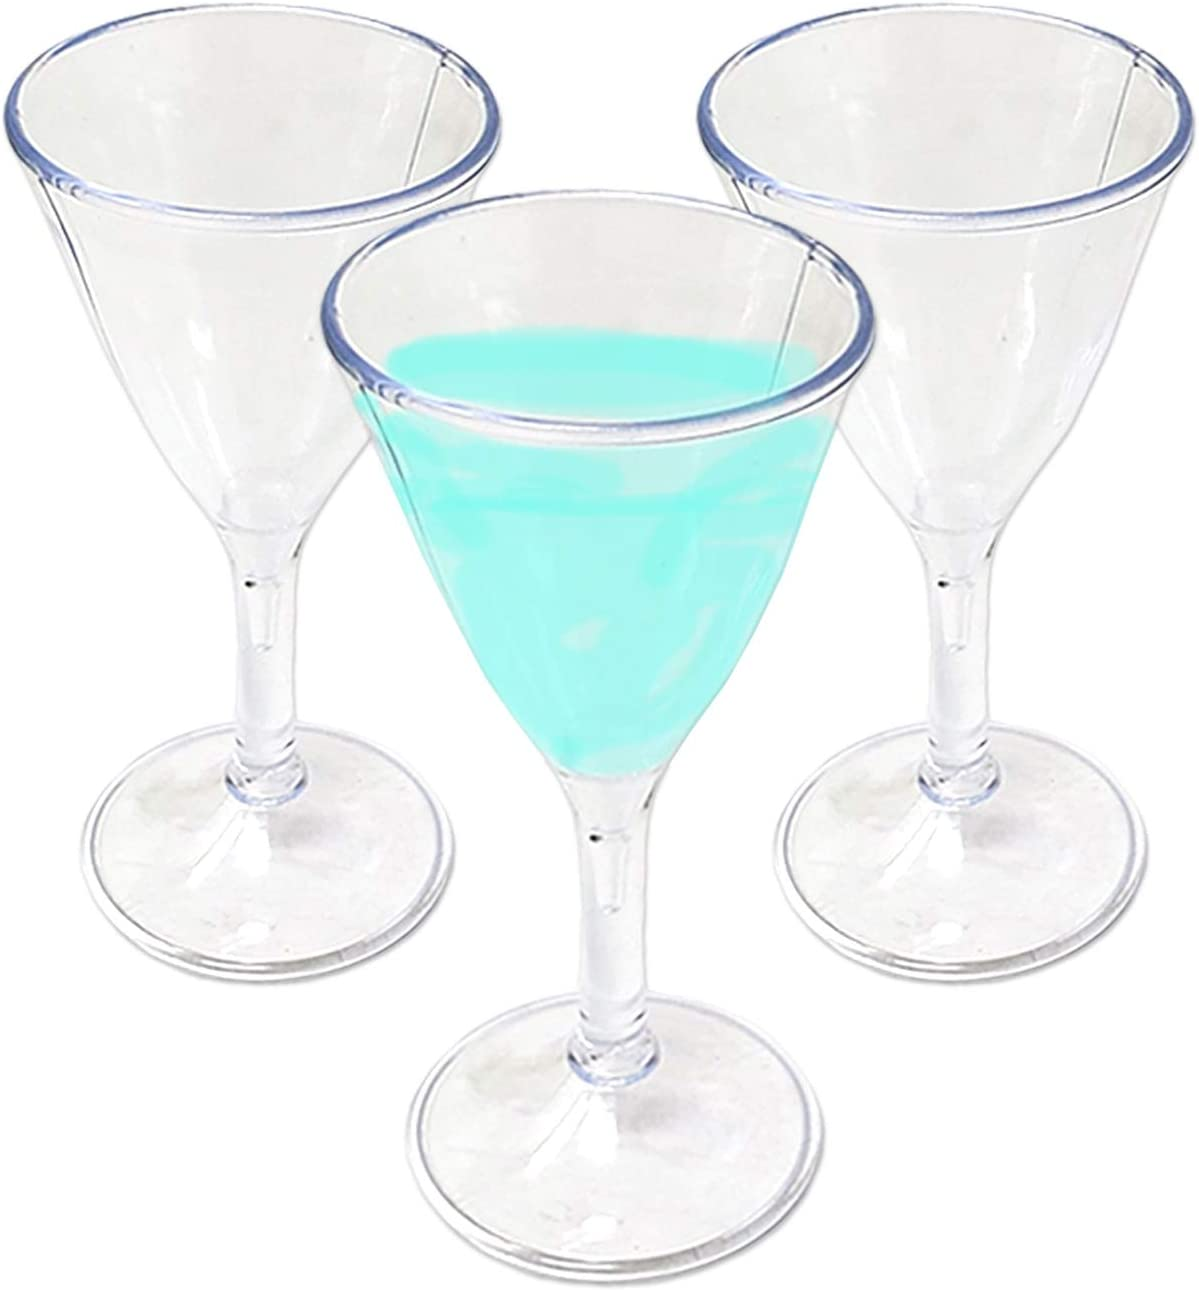 Martini Shot Glasses Party Supplies Alcohol cheap Mini Max 82% OFF Durable Cup